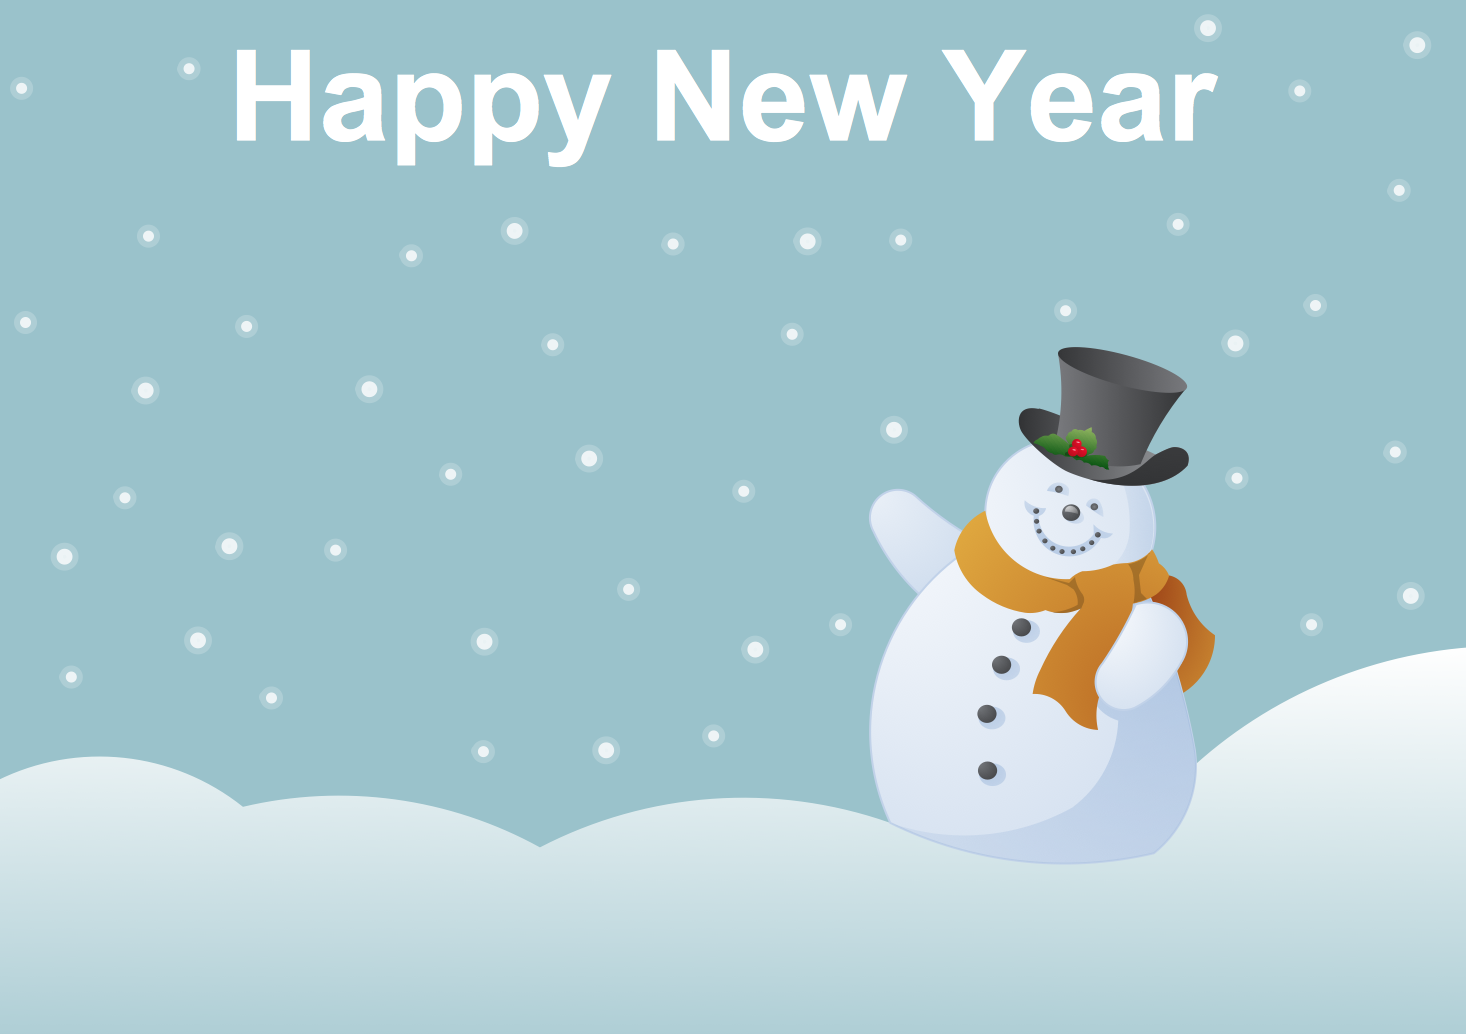 New year card template. Snowman